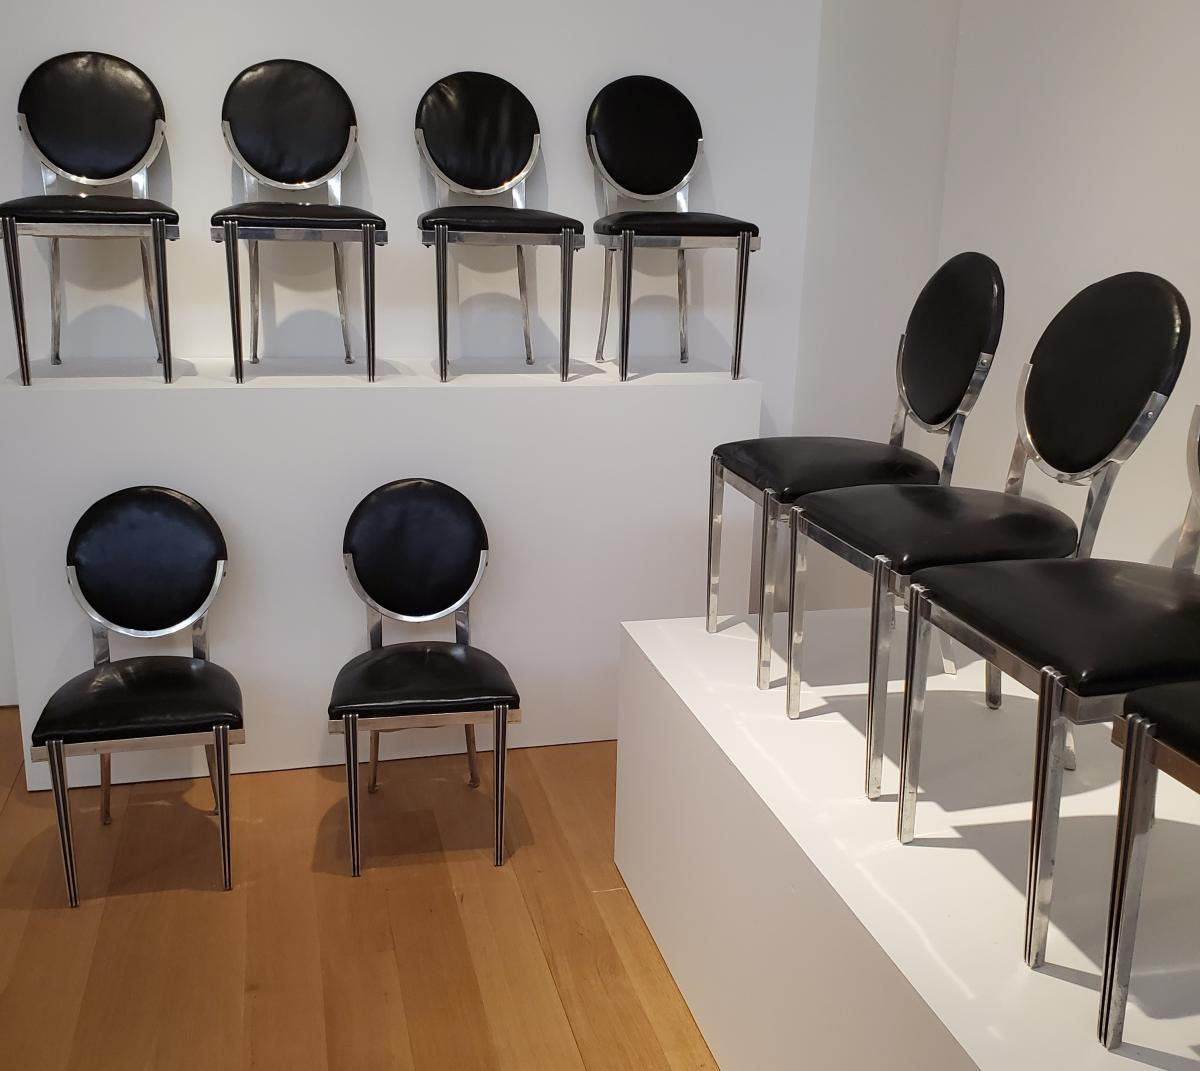 Set of metal chairs by Emile-Jacques Ruhlmann